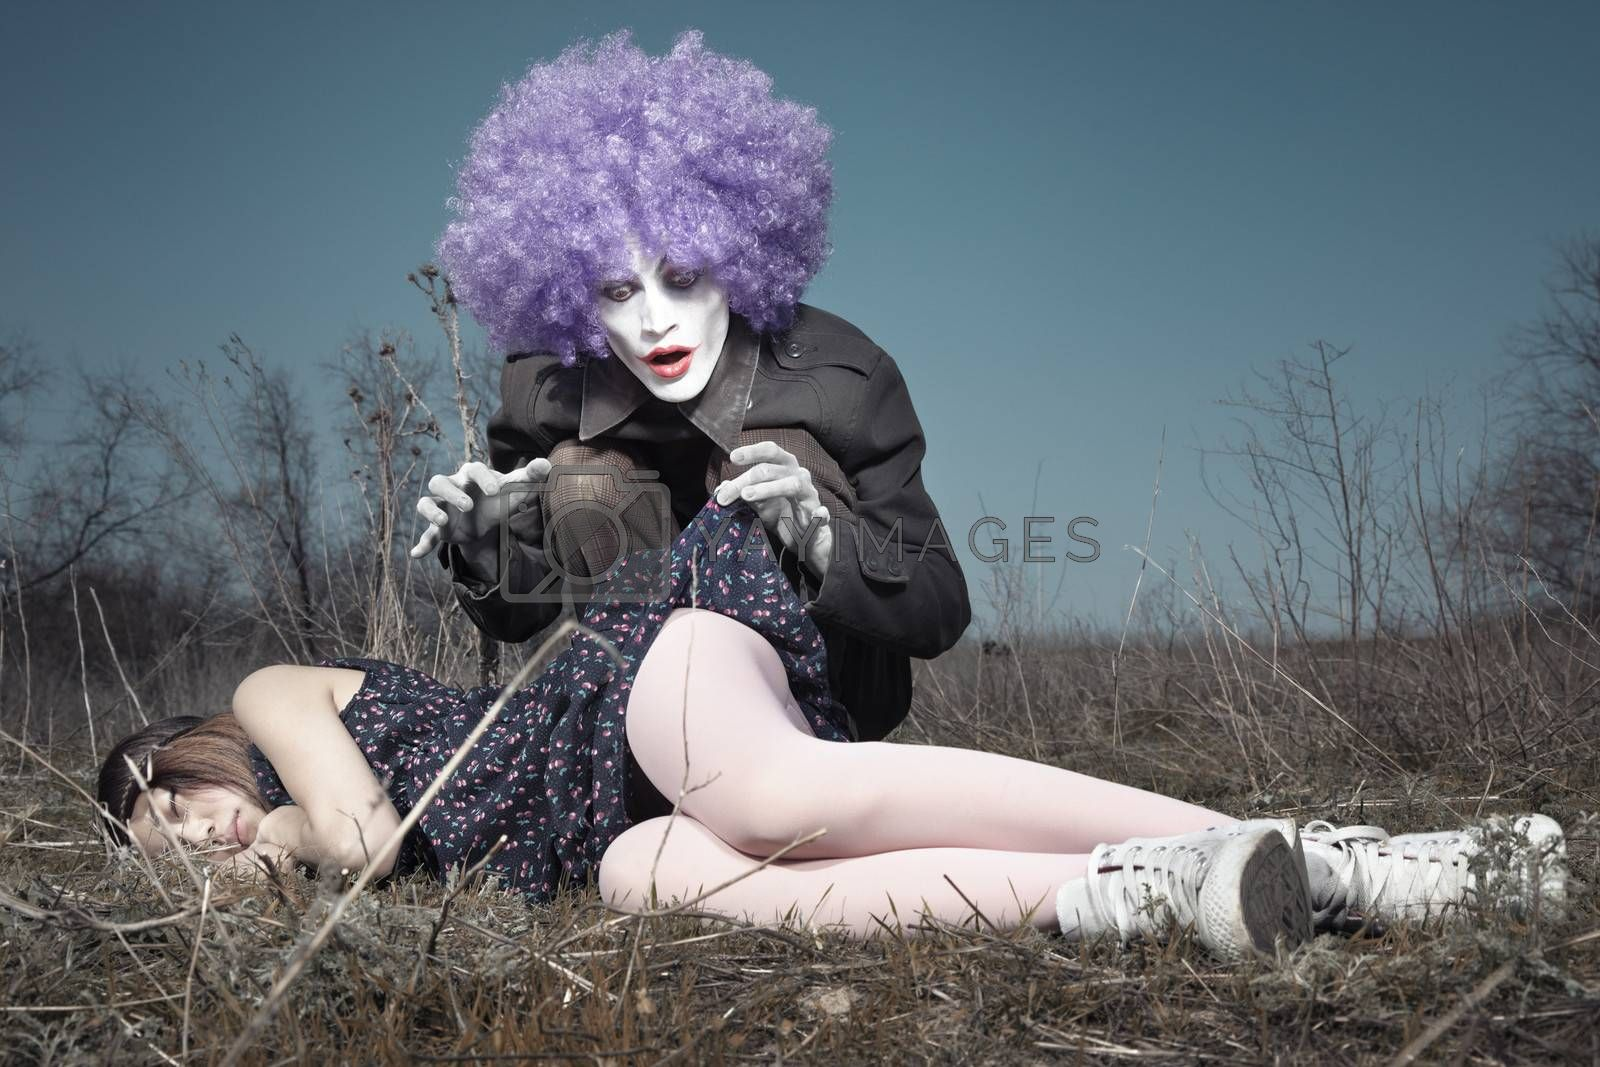 Sleeping girl outdoors and crazy maniac clown touching her shirt. Artistic colors added